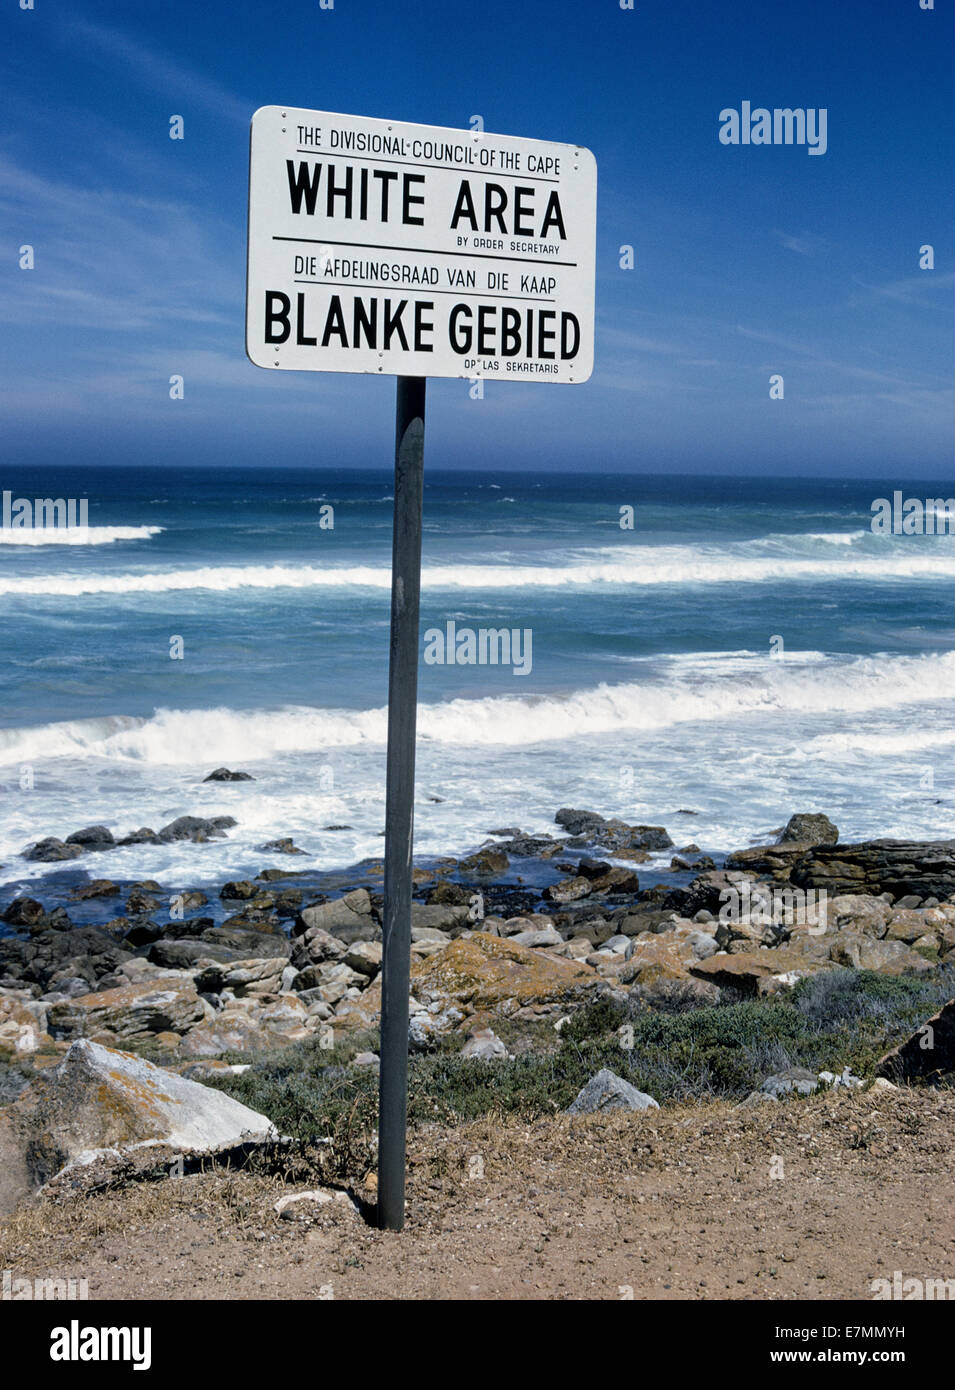 This 'White Area' sign stood along the Cape coast until anti-apartheid activist Nelson Mandela was elected - Stock Image